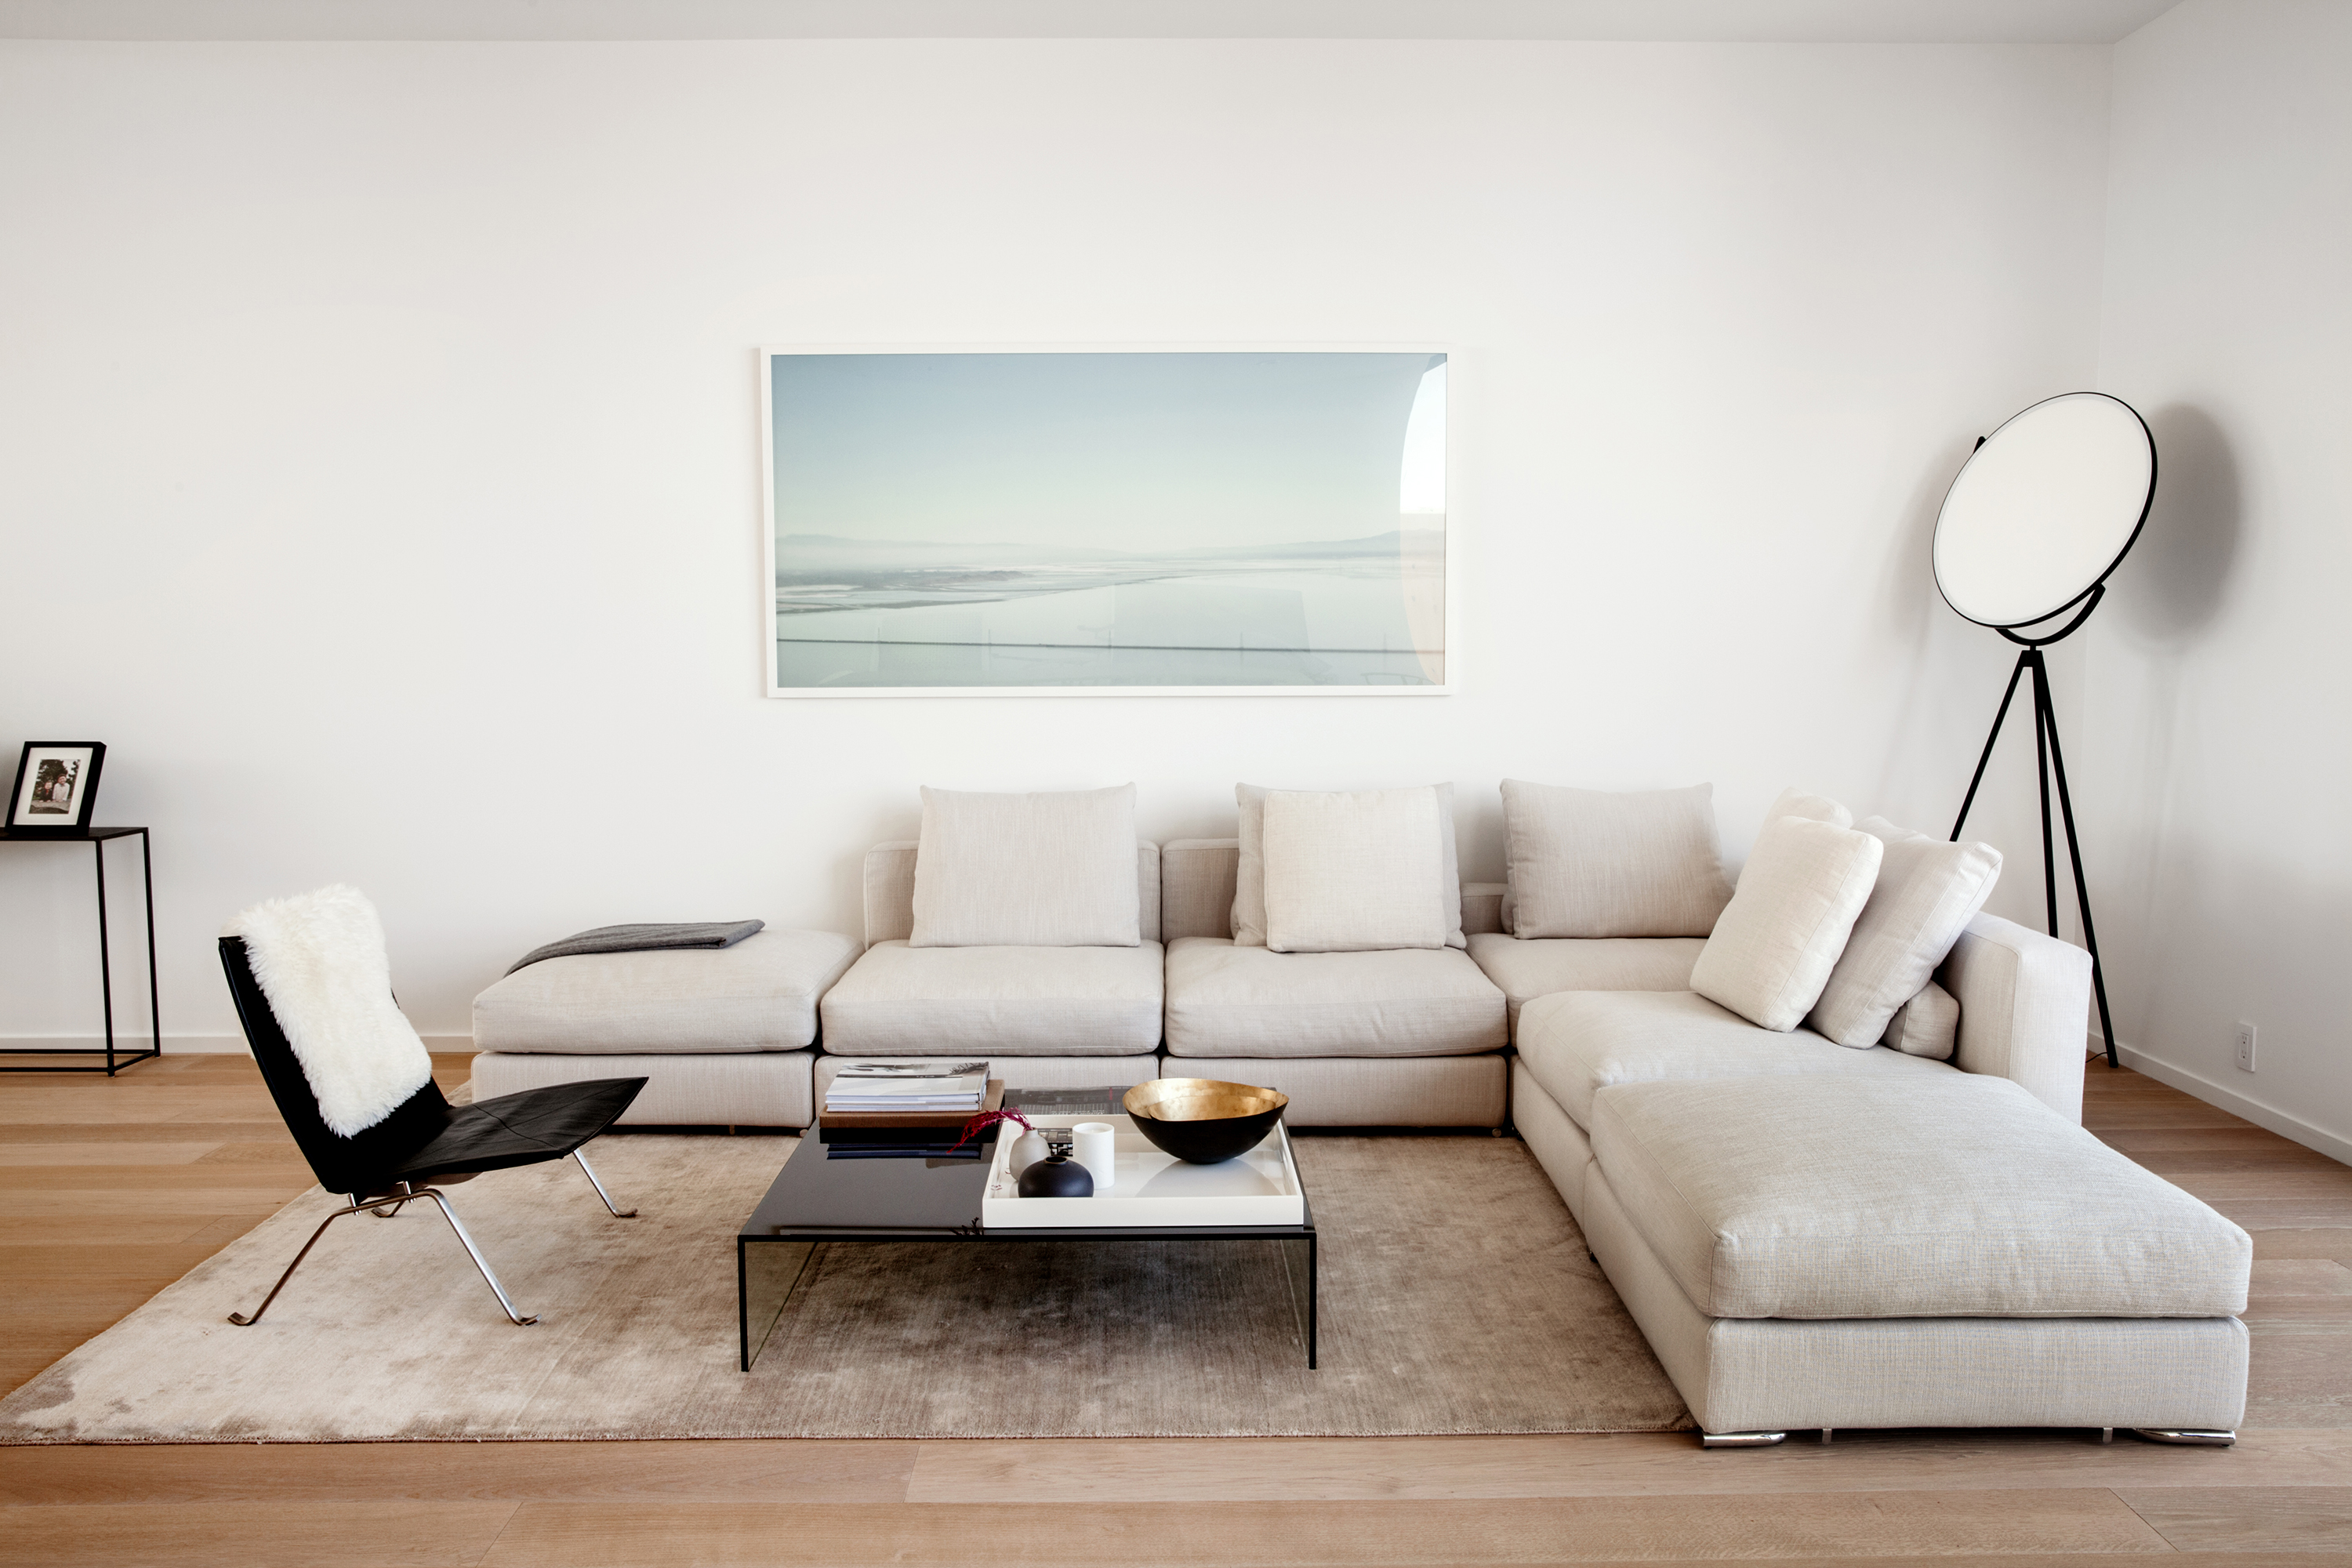 A brightly lit living room with a light beige sectional, black accent chair, and light blue framed landscape painting.